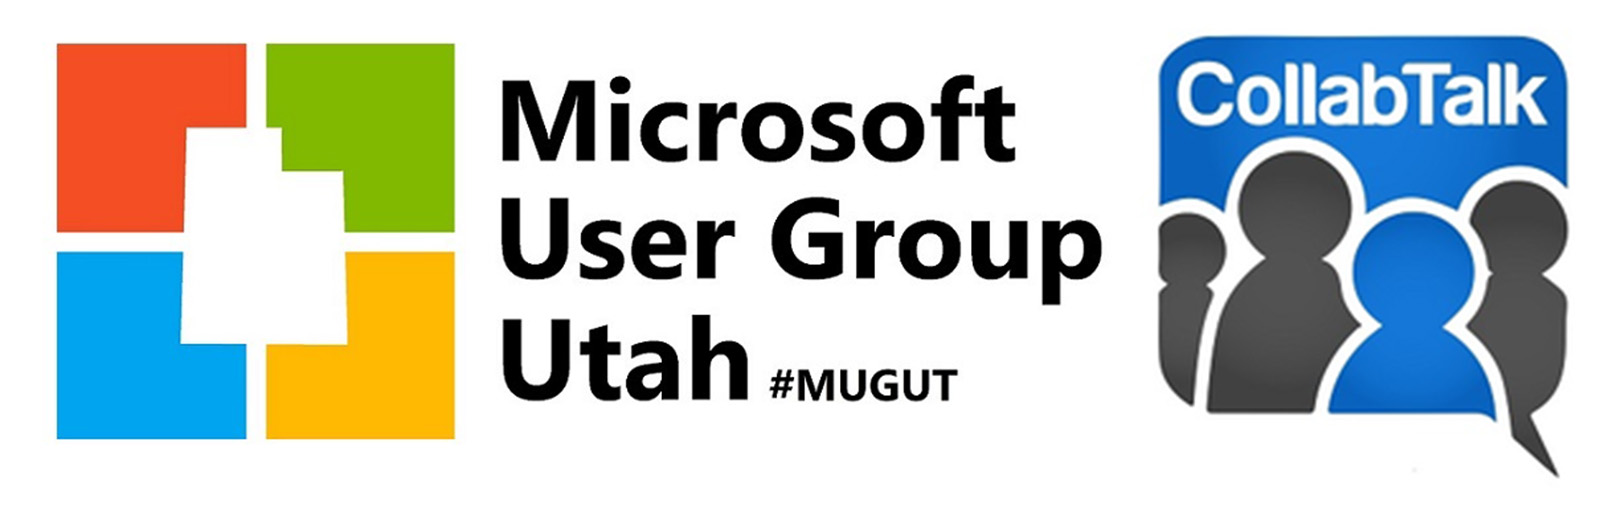 Microsoft User Group Utah with CollabTalk banner